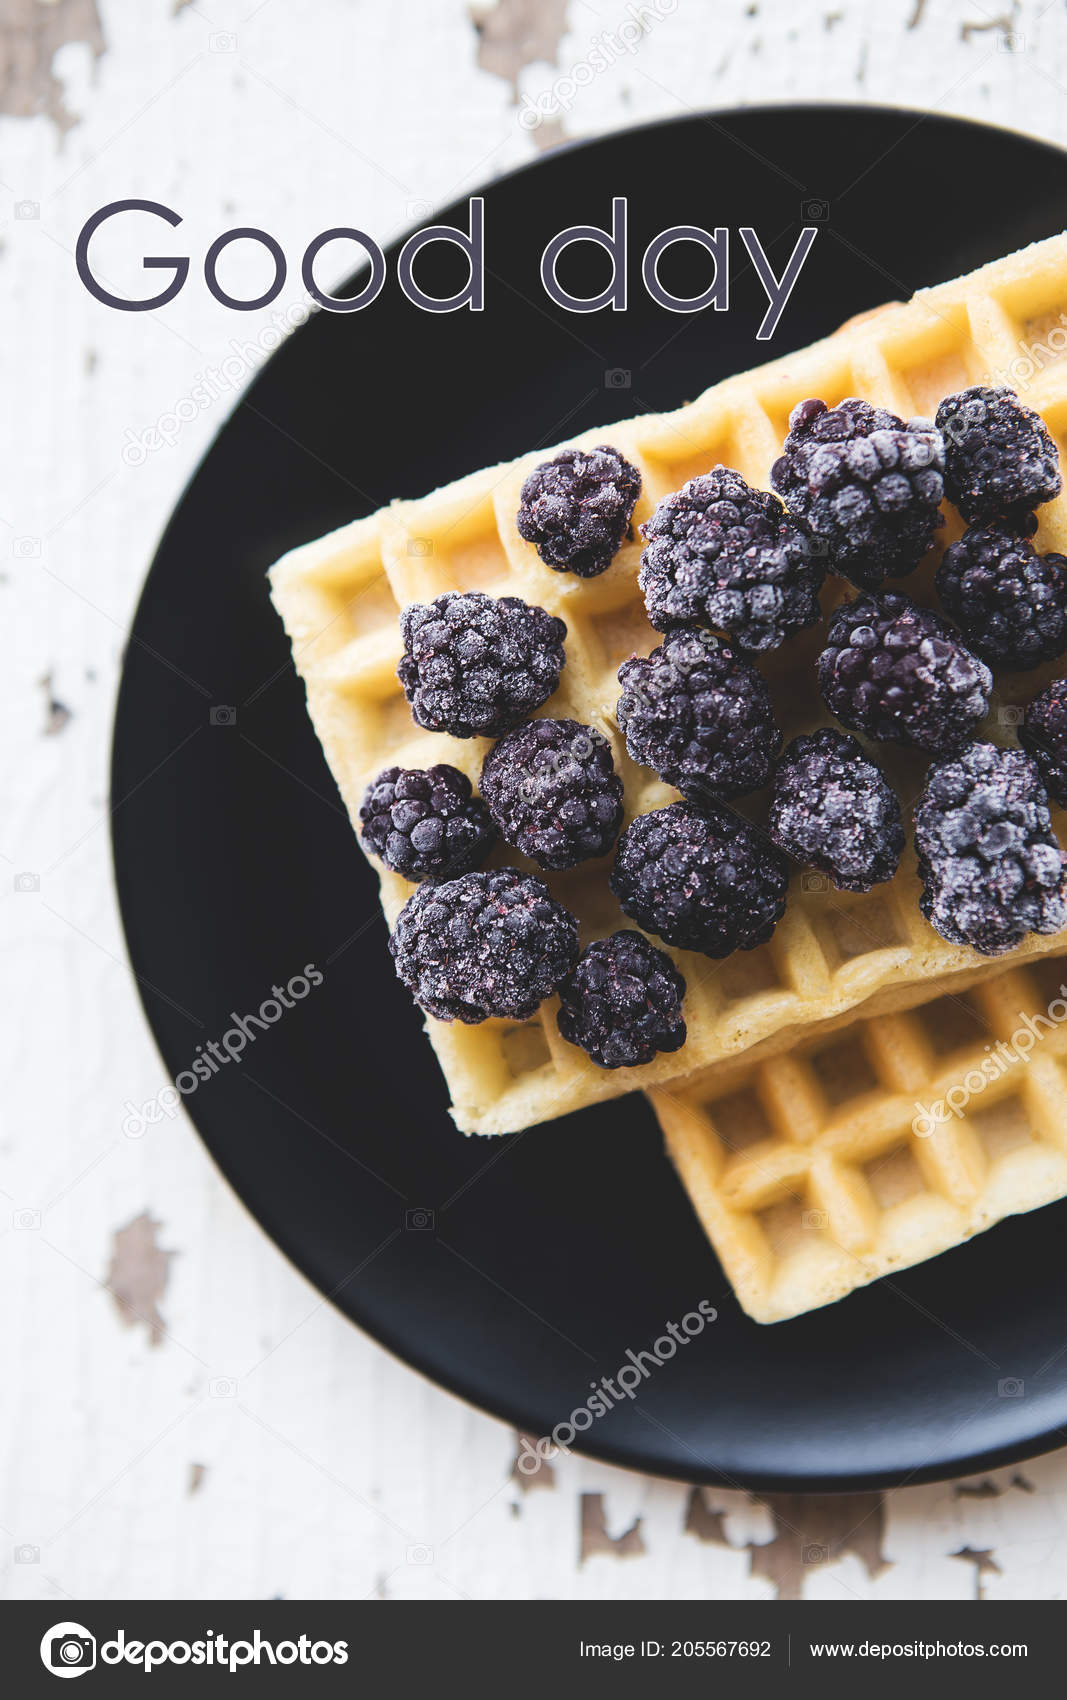 Delicious and beautiful Belgian waffles with blackberry, the